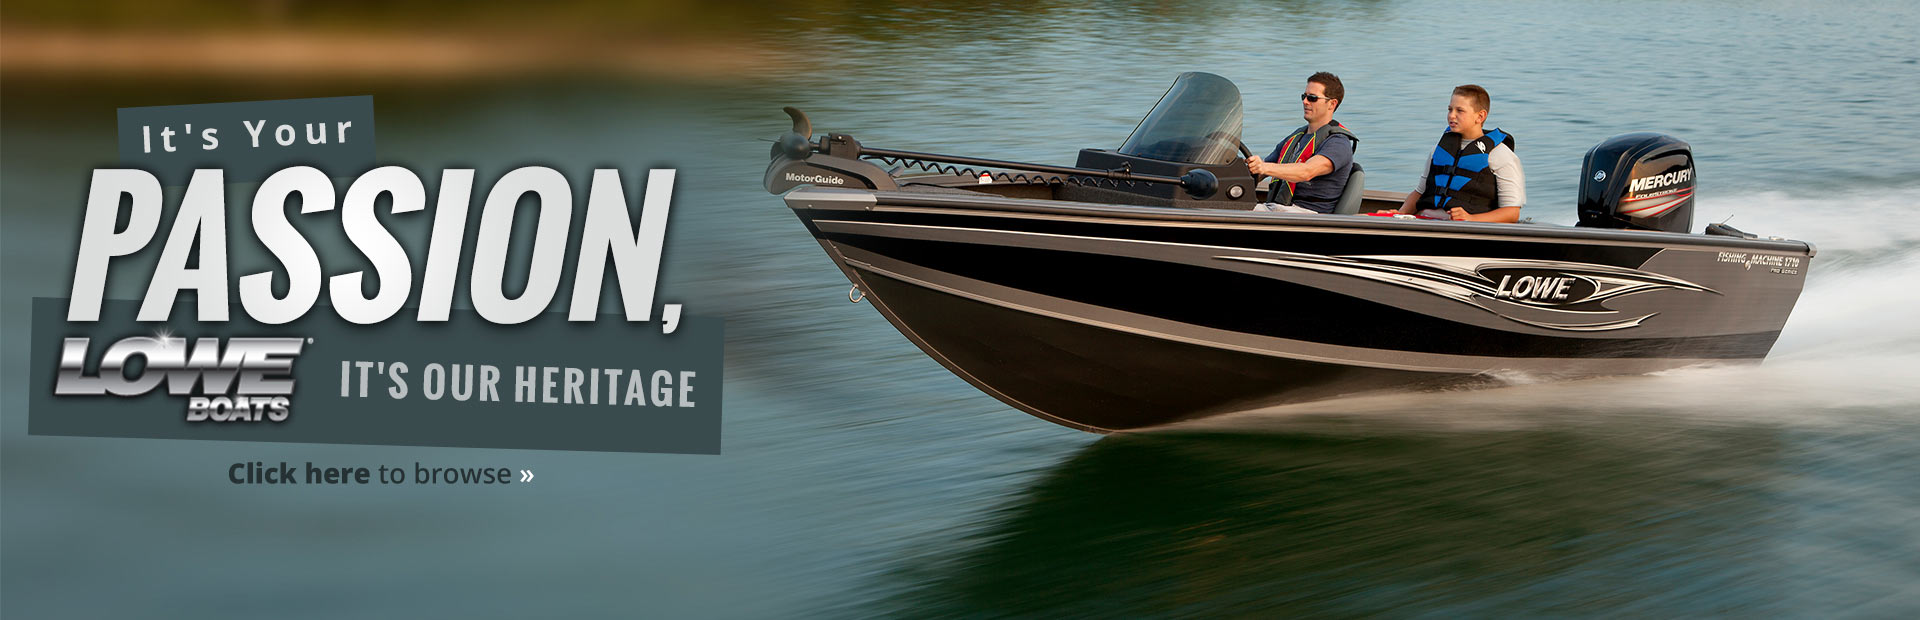 Lowe Boats: Click here to view the models.